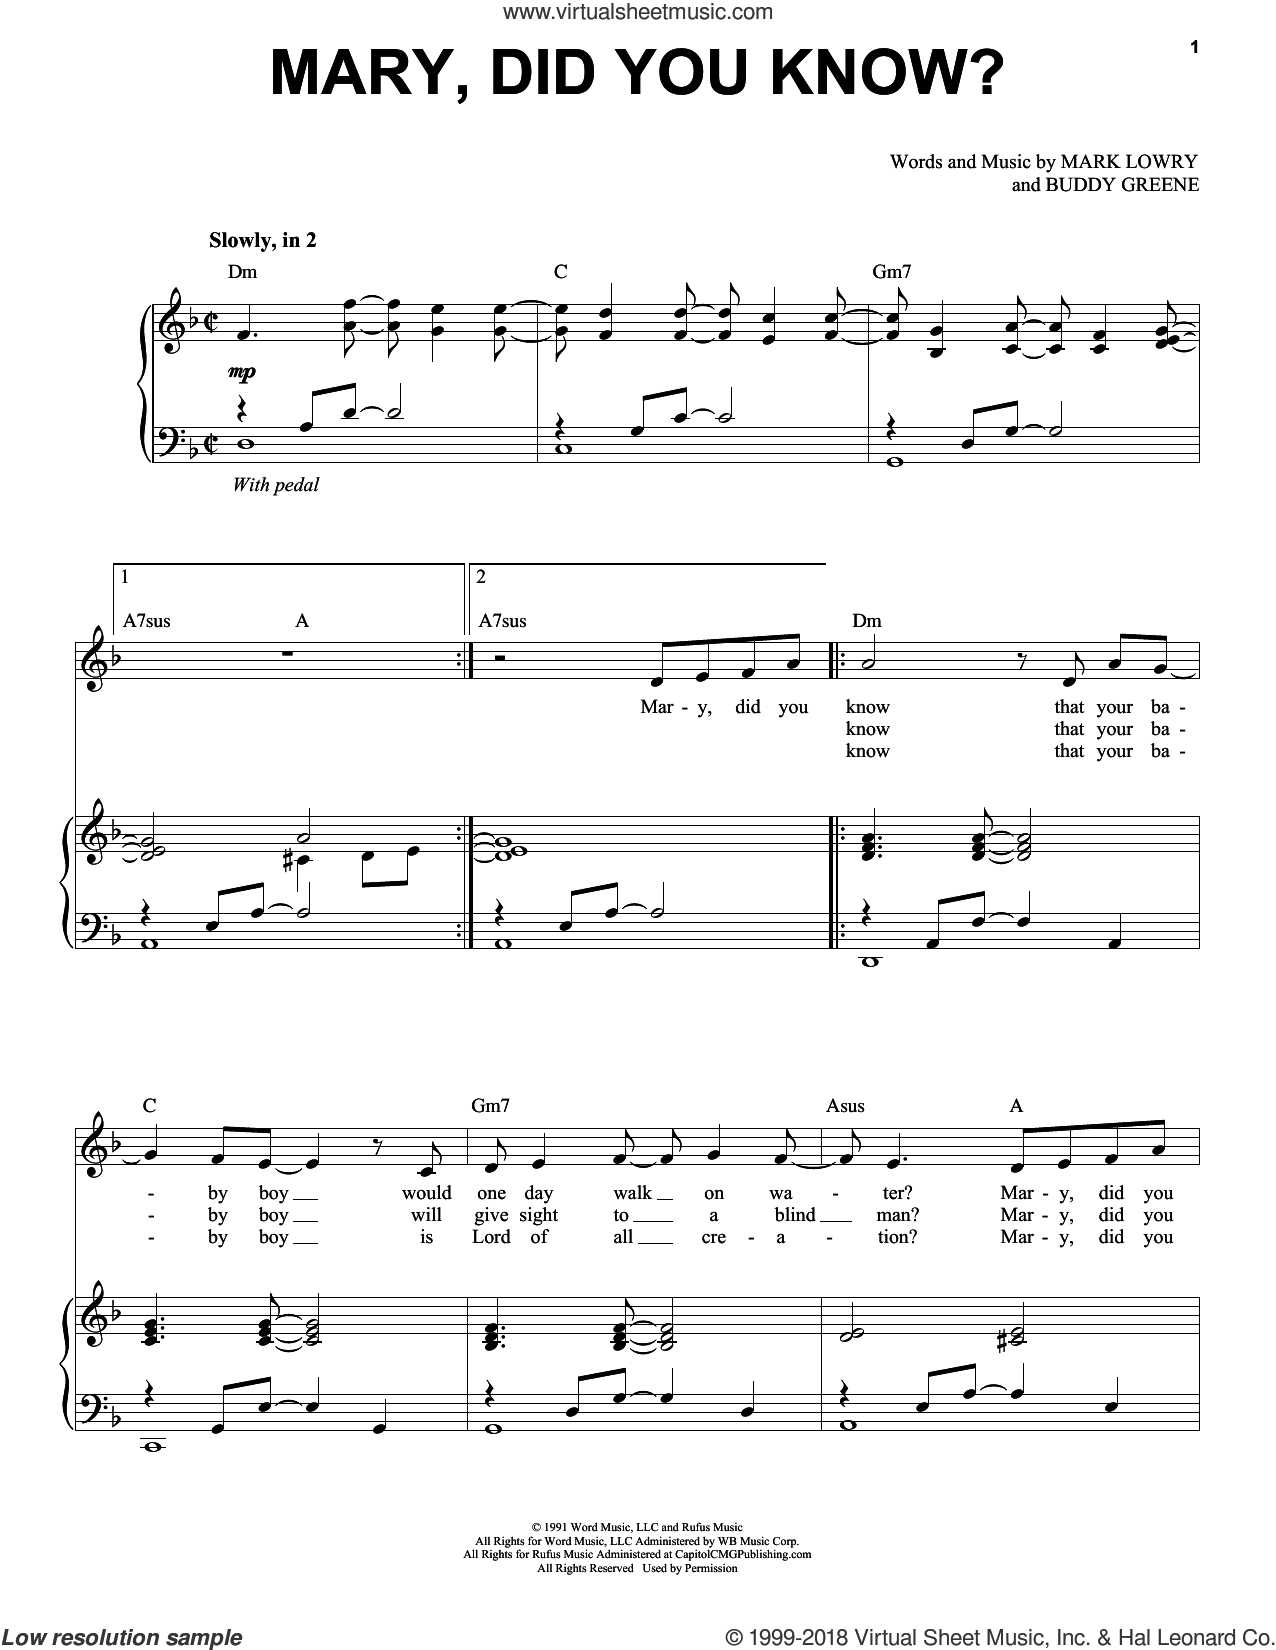 Mary, Did You Know? sheet music for voice and piano by Mark Lowry, Kathy Mattea and Buddy Greene, intermediate skill level